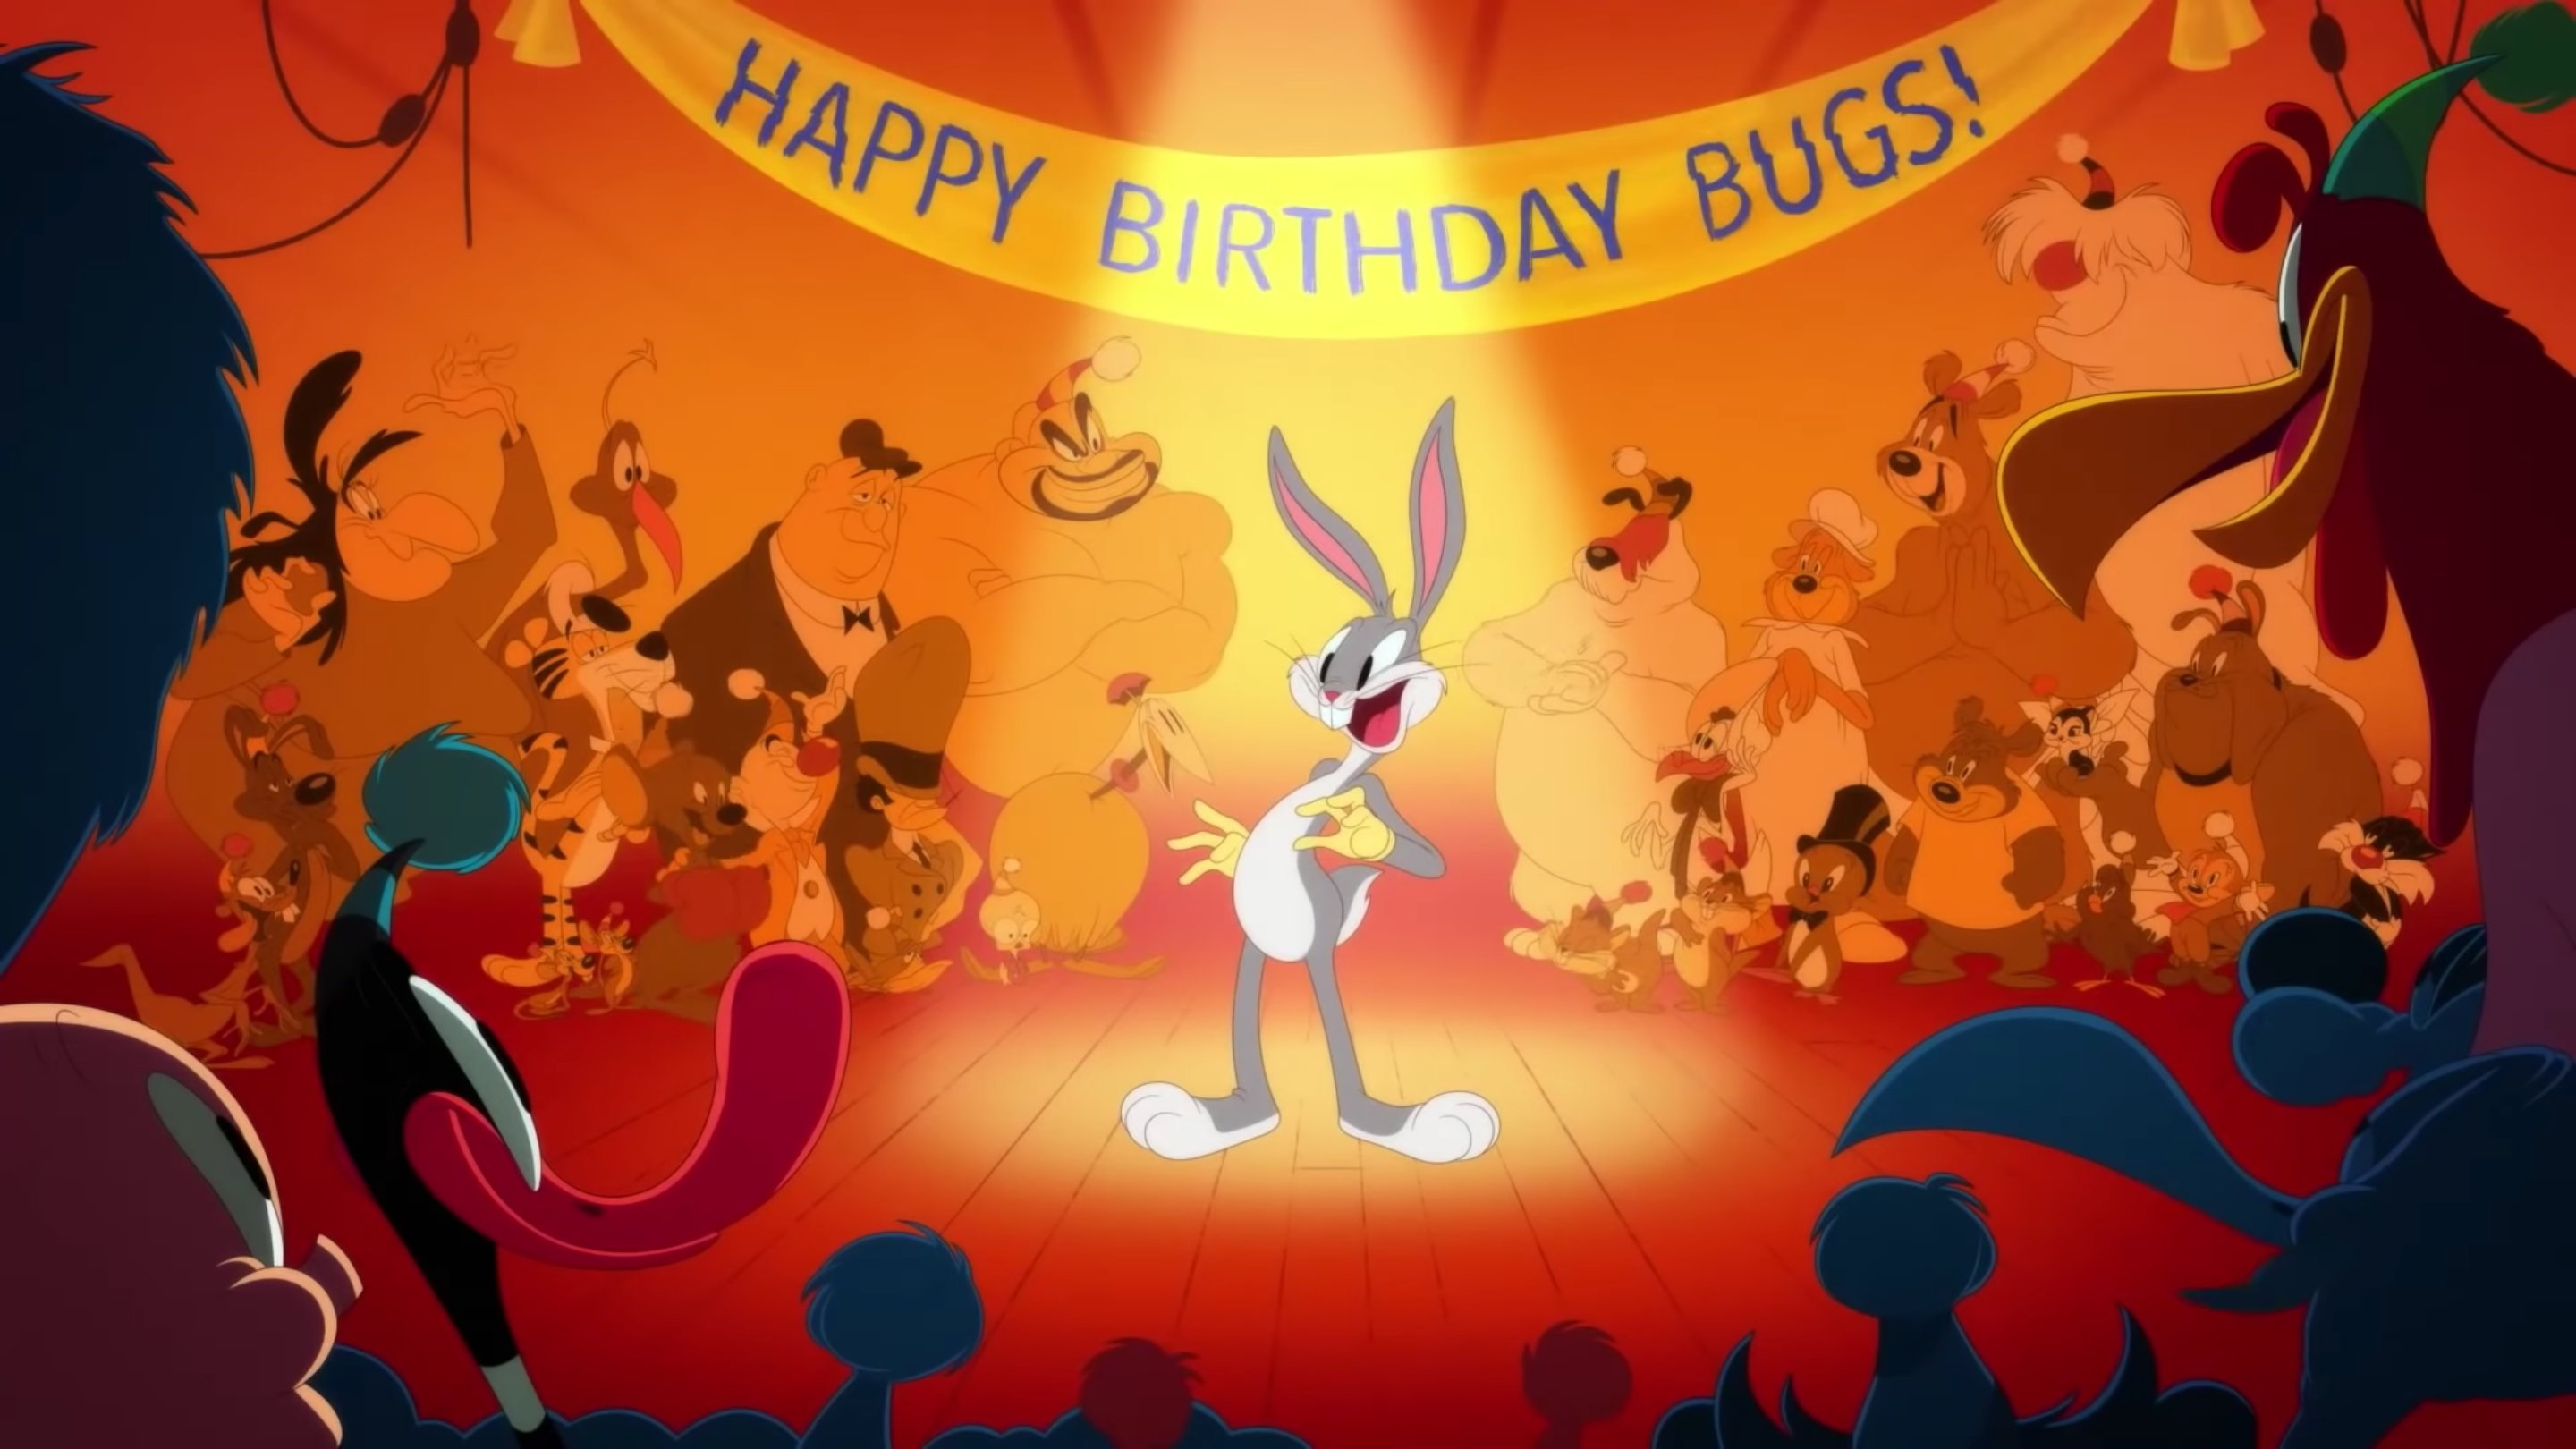 Happy Birthday Bugs Bunny!